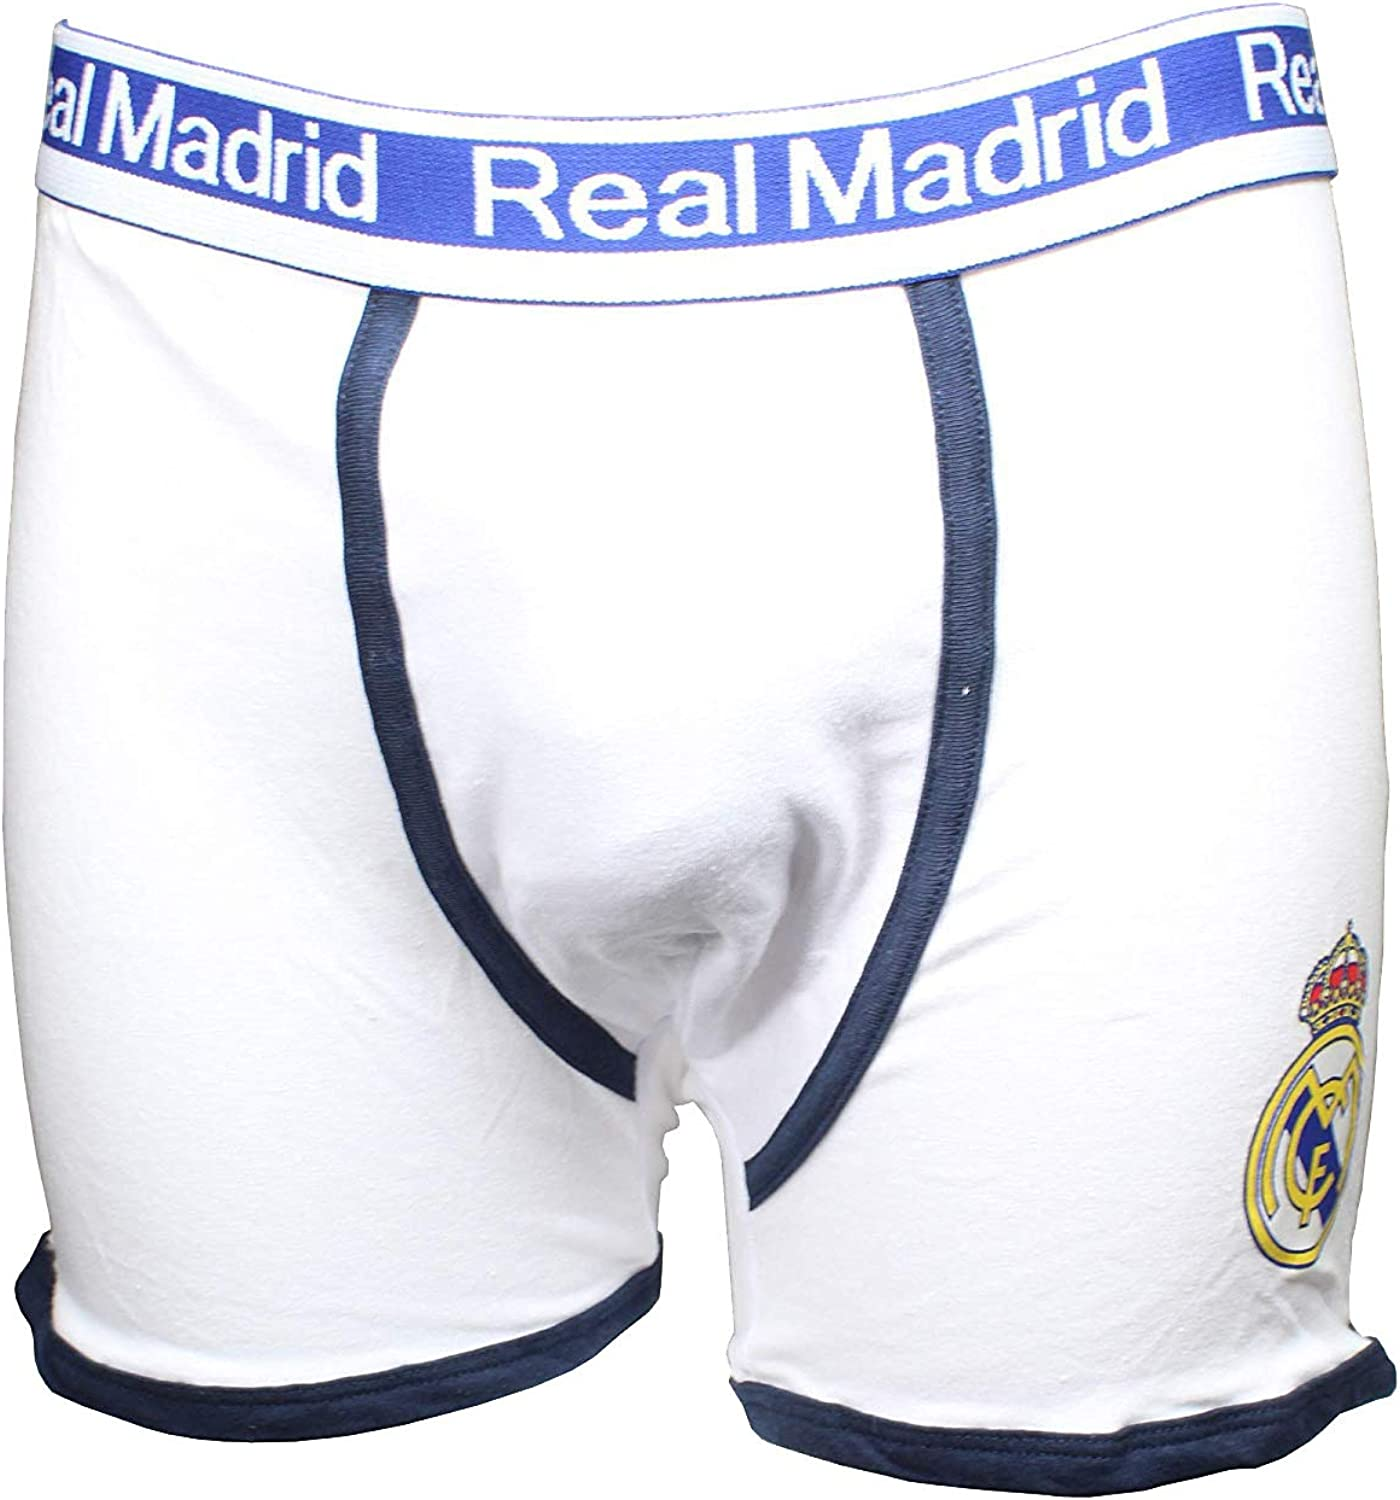 Boxer Hombre - Real Madrid - Producto Oficial - Set 2 Pares - RM602